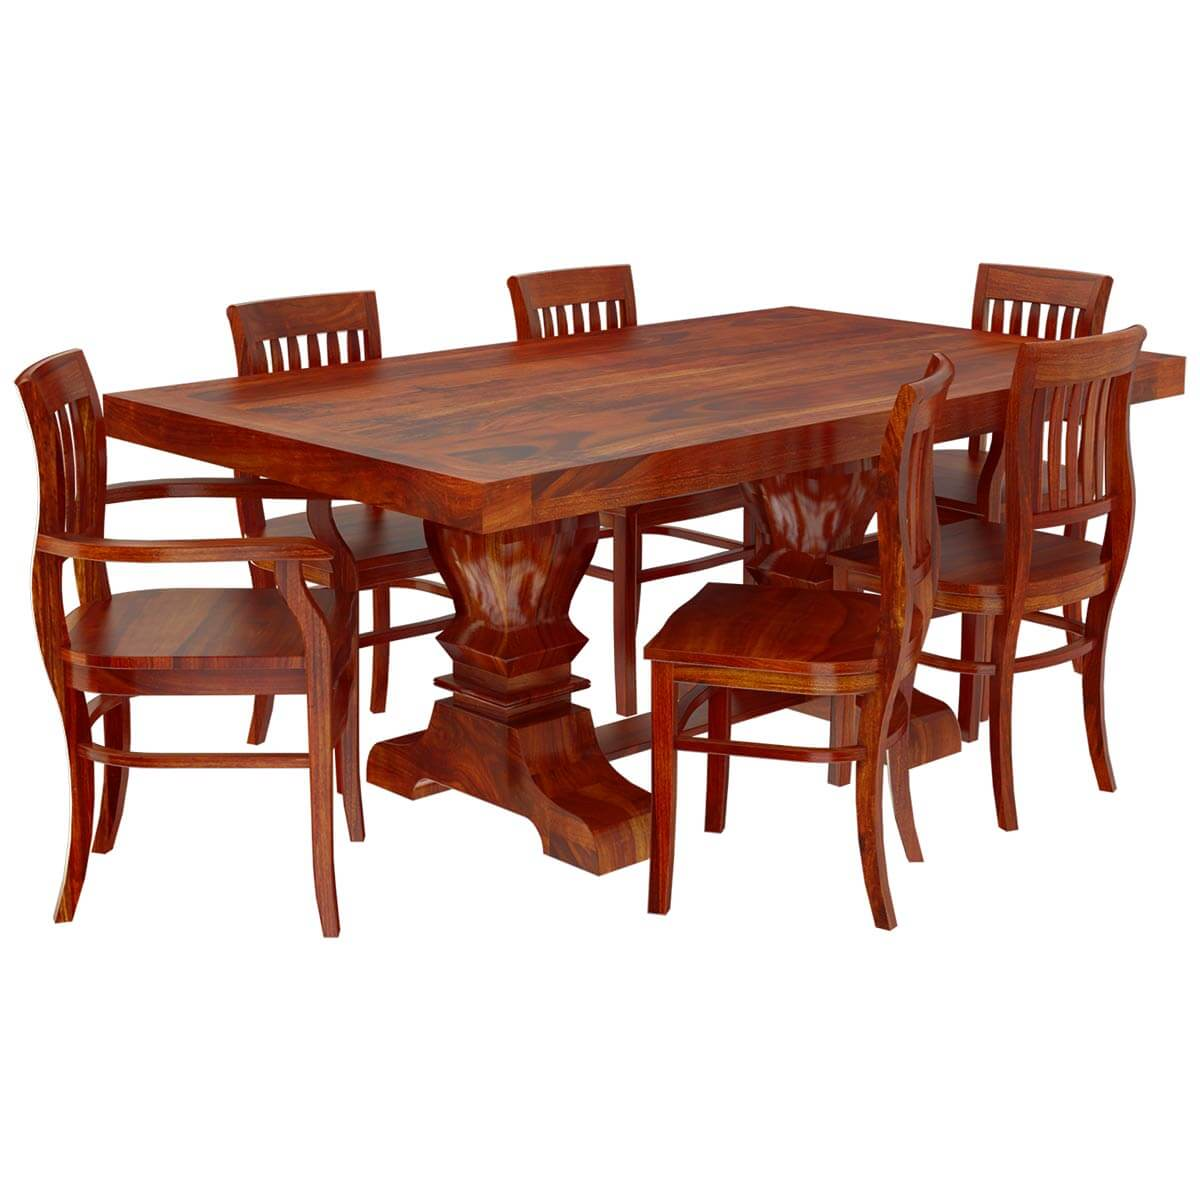 Wooden Dining Table Set ~ Siena solid wood trestle pedestal dining table barrel